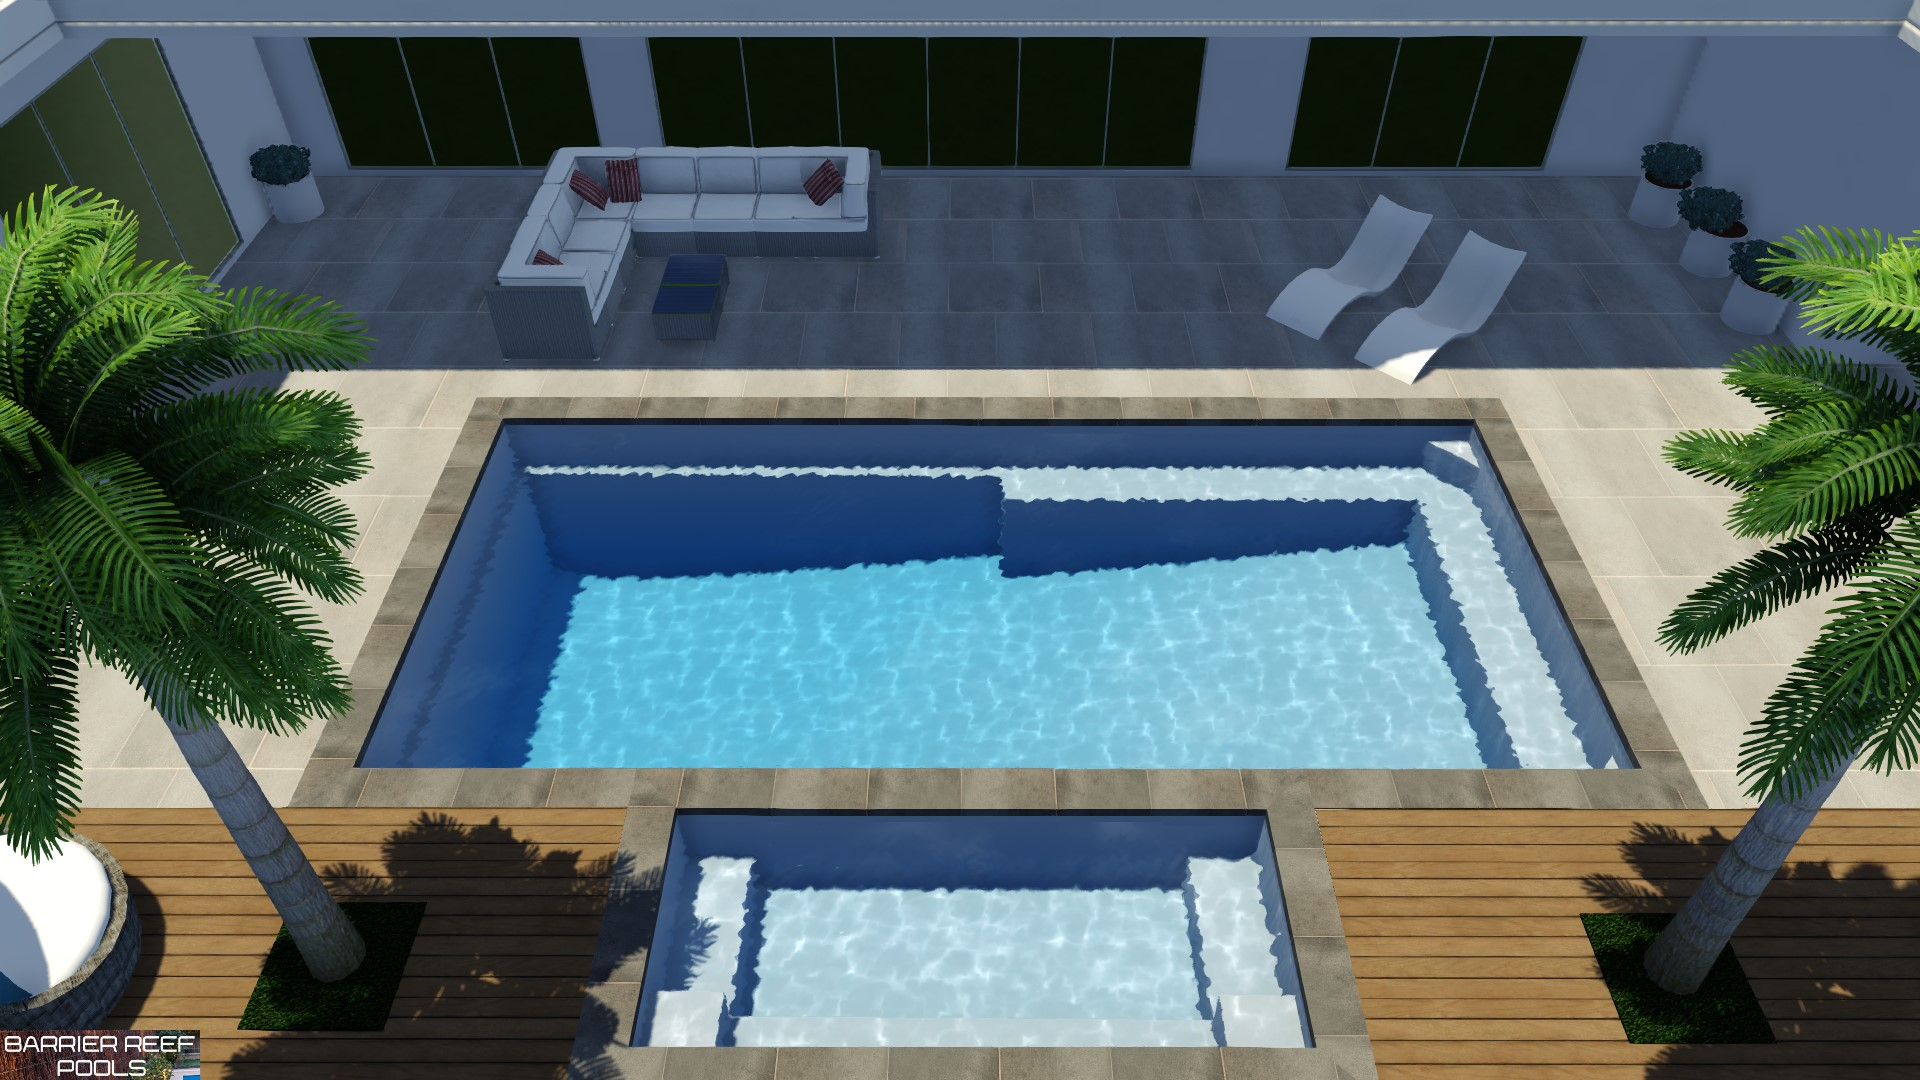 Barrier-Reef-Pools-New-Spa-Range_008